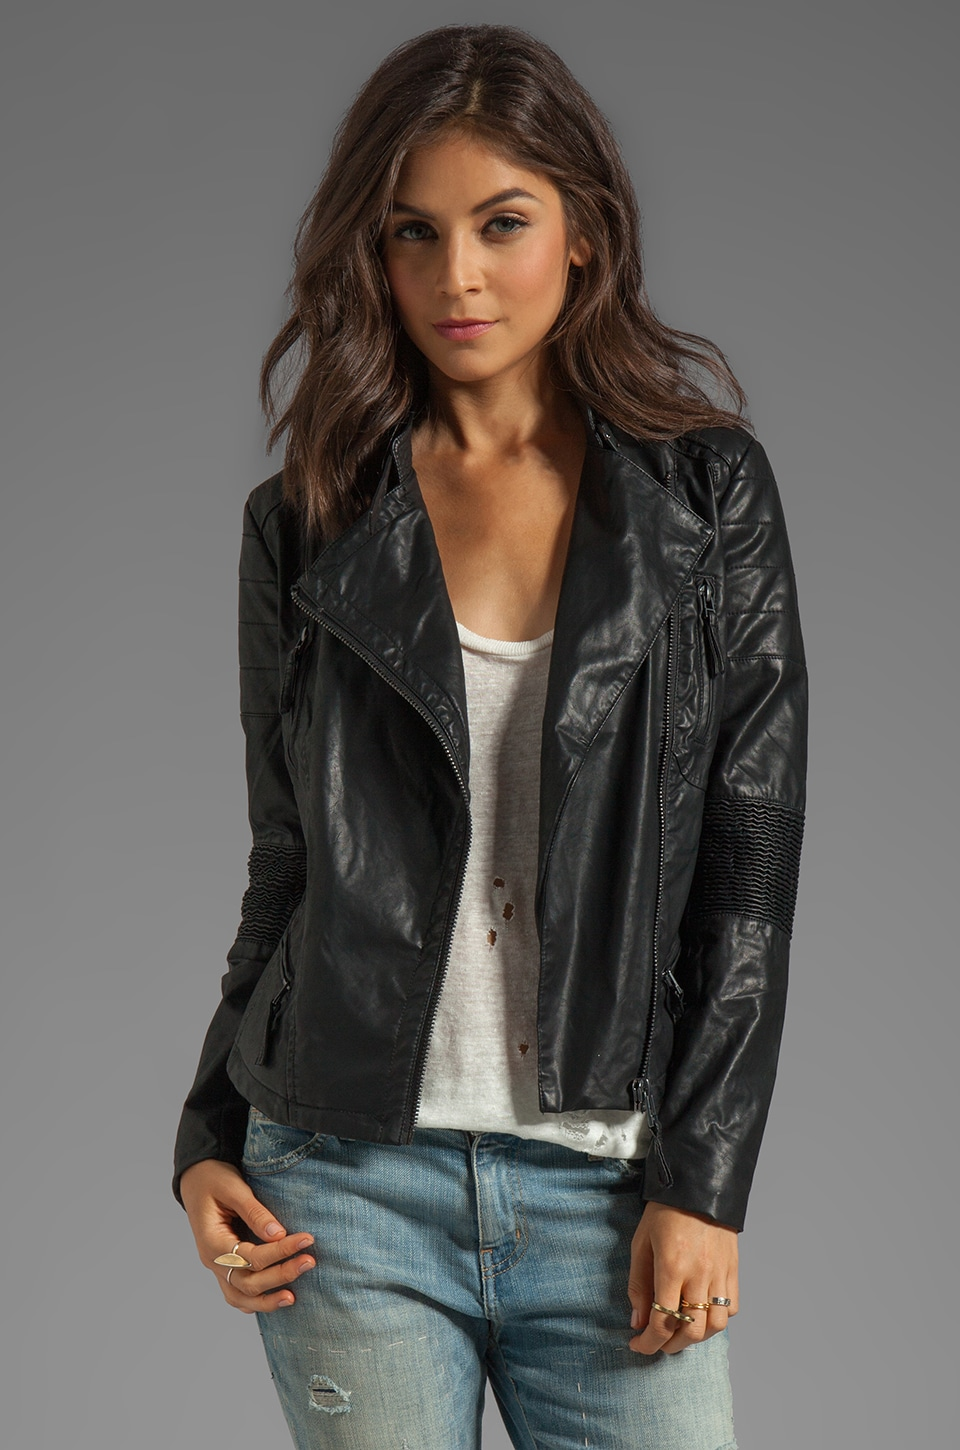 BLANKNYC Leather Biker Jacket in Black